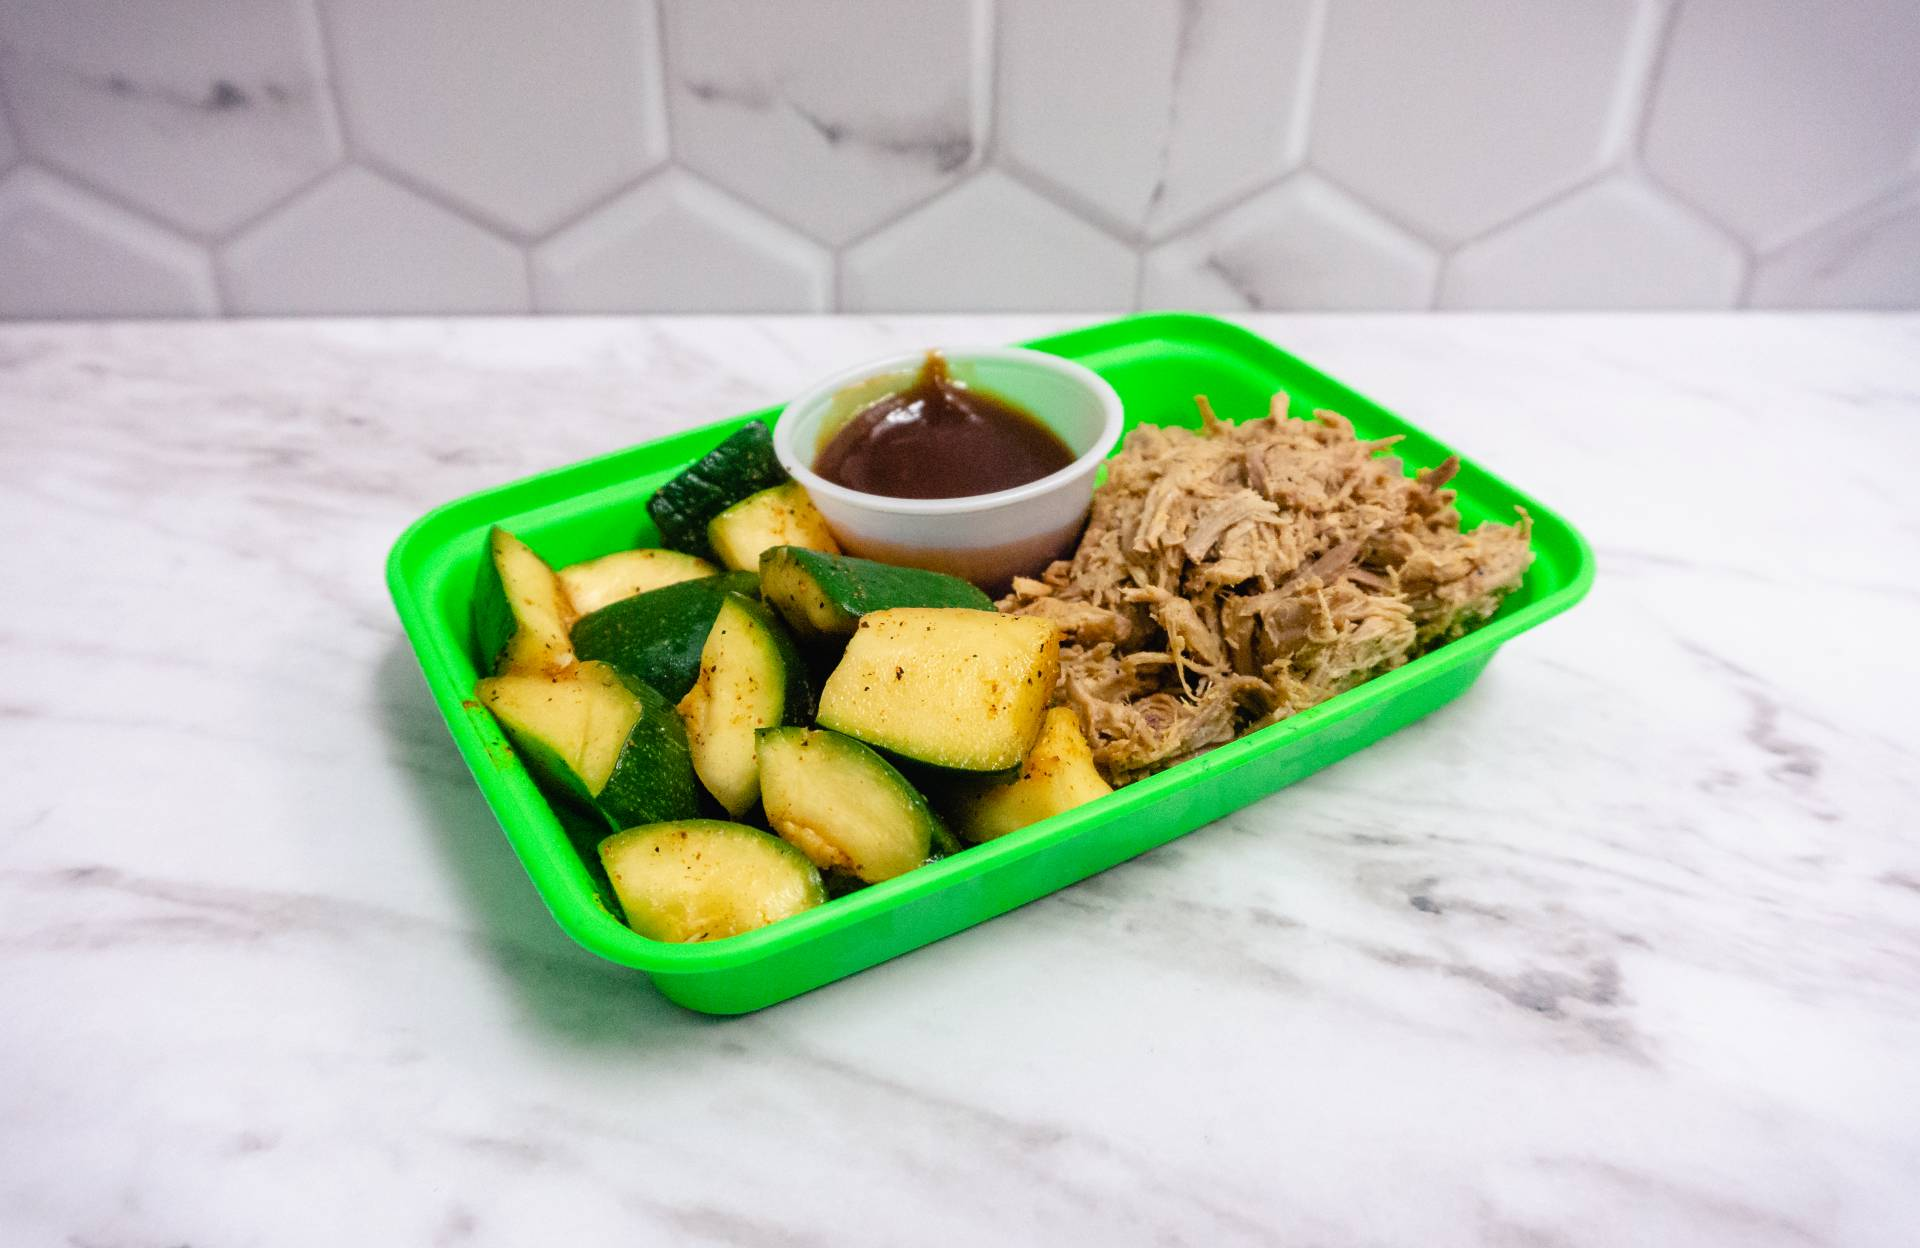 BBQ Pulled Pork with Squash